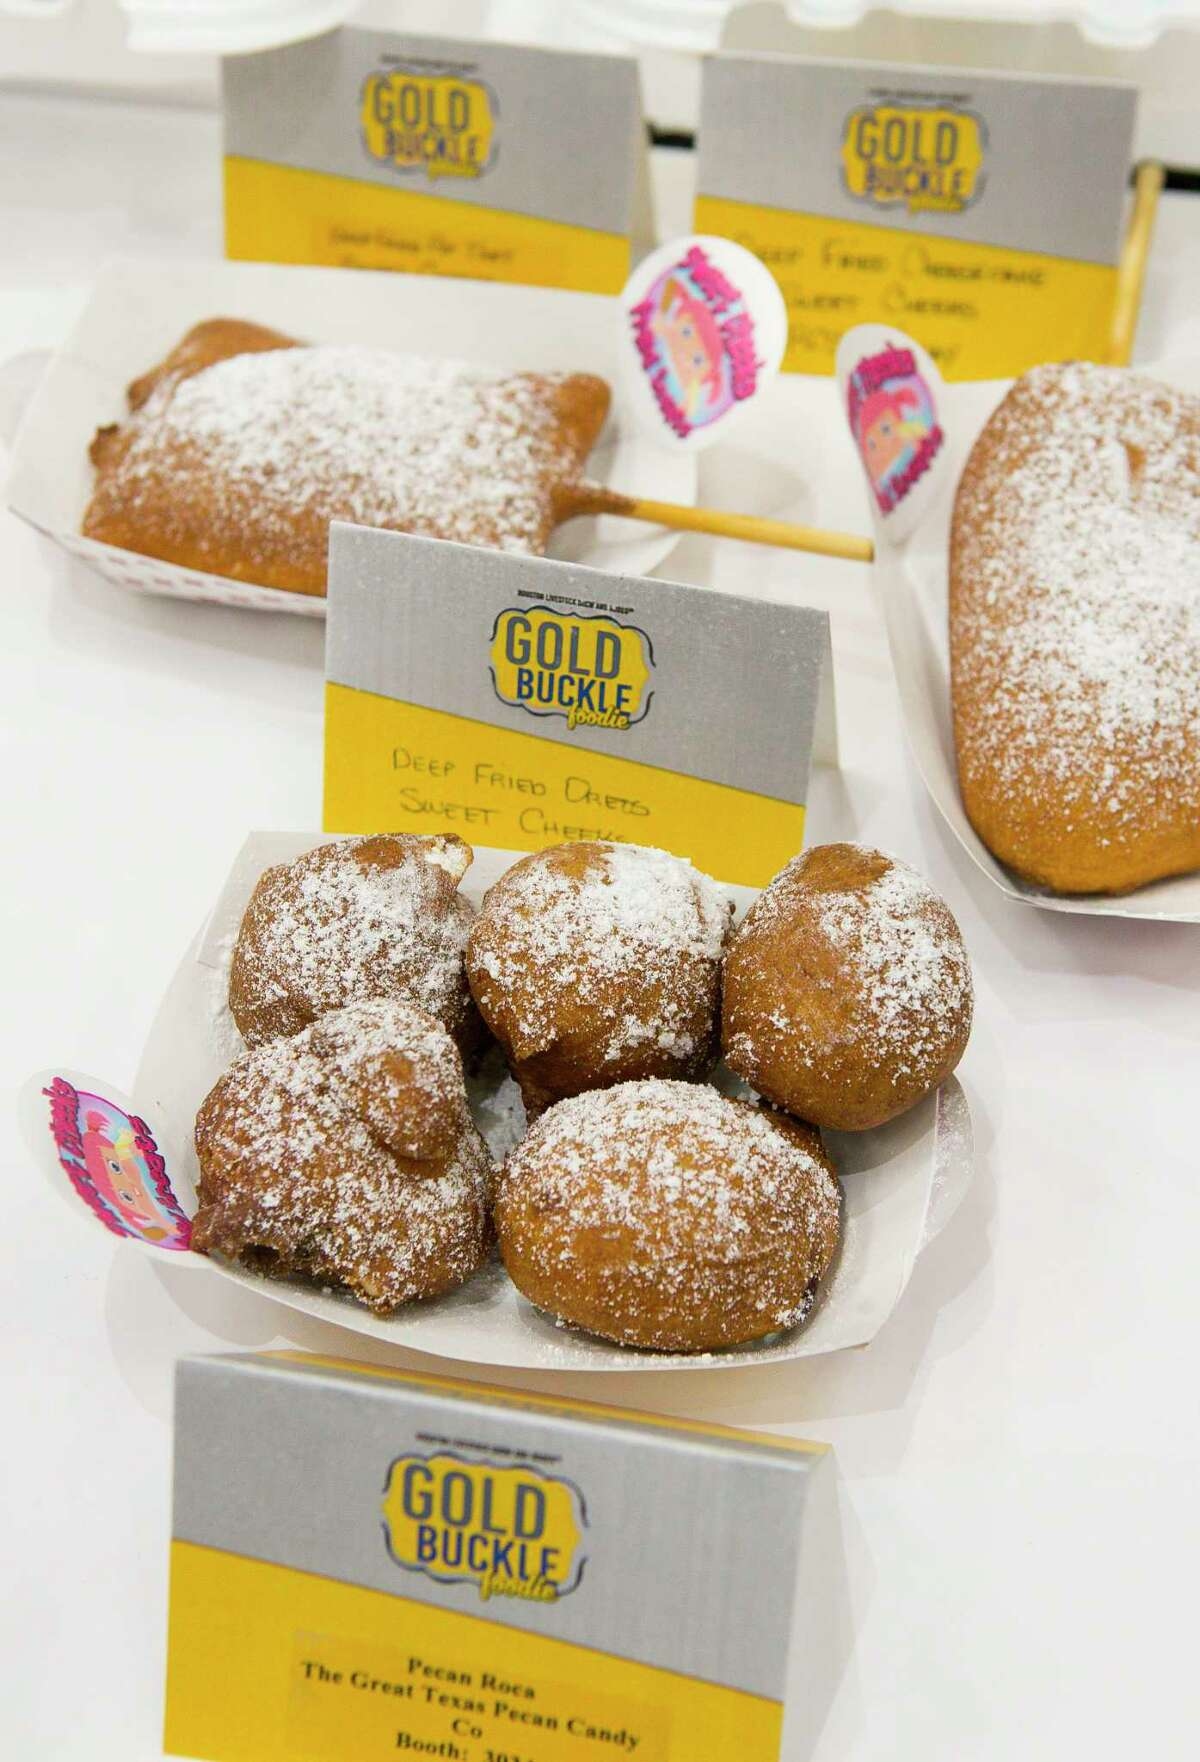 Deep Fried Oreos from Sweet Cheeks RCS Carnival during the judging of the Gold Buckle Foodie Awards at the Houston Livestock Show and Rodeo in NRG Center, Thursday, Feb. 28, 2019. The annual contest pits fair foods available at the carnival against each other in several categories for local judges.